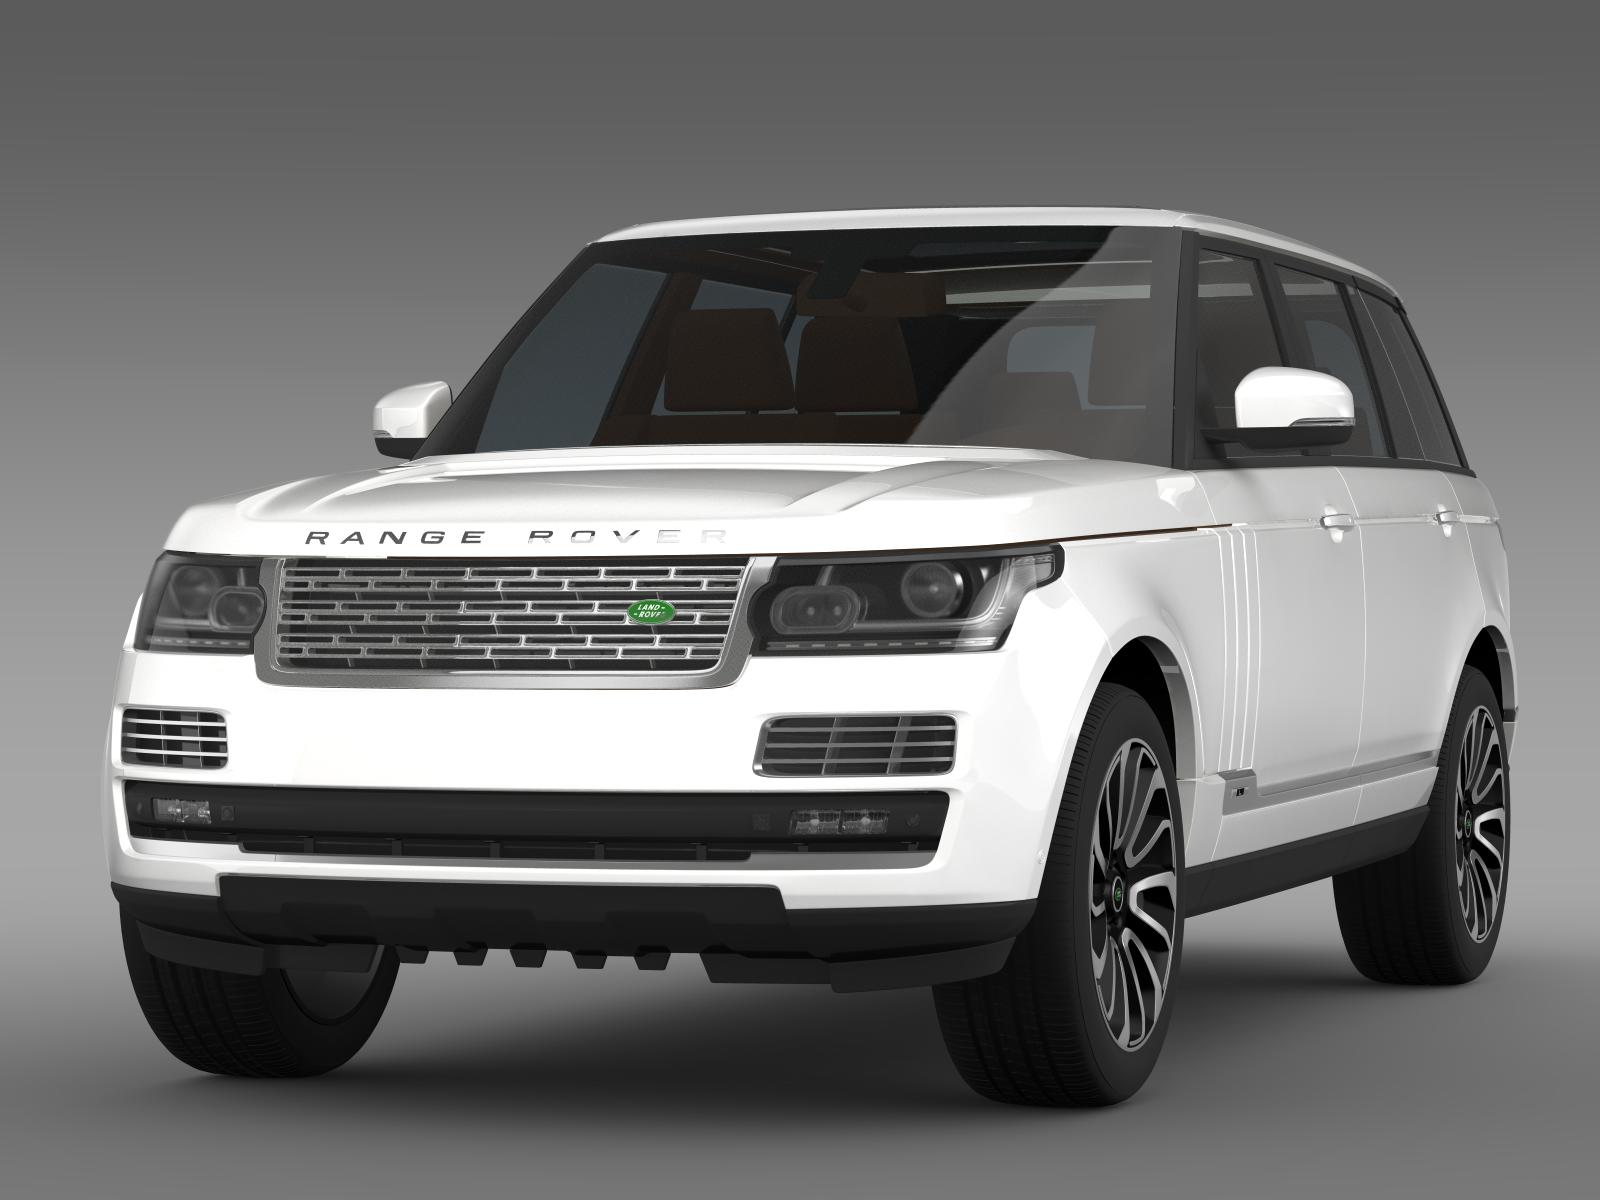 range rover autobiography lwb l405 2014 3d model. Black Bedroom Furniture Sets. Home Design Ideas